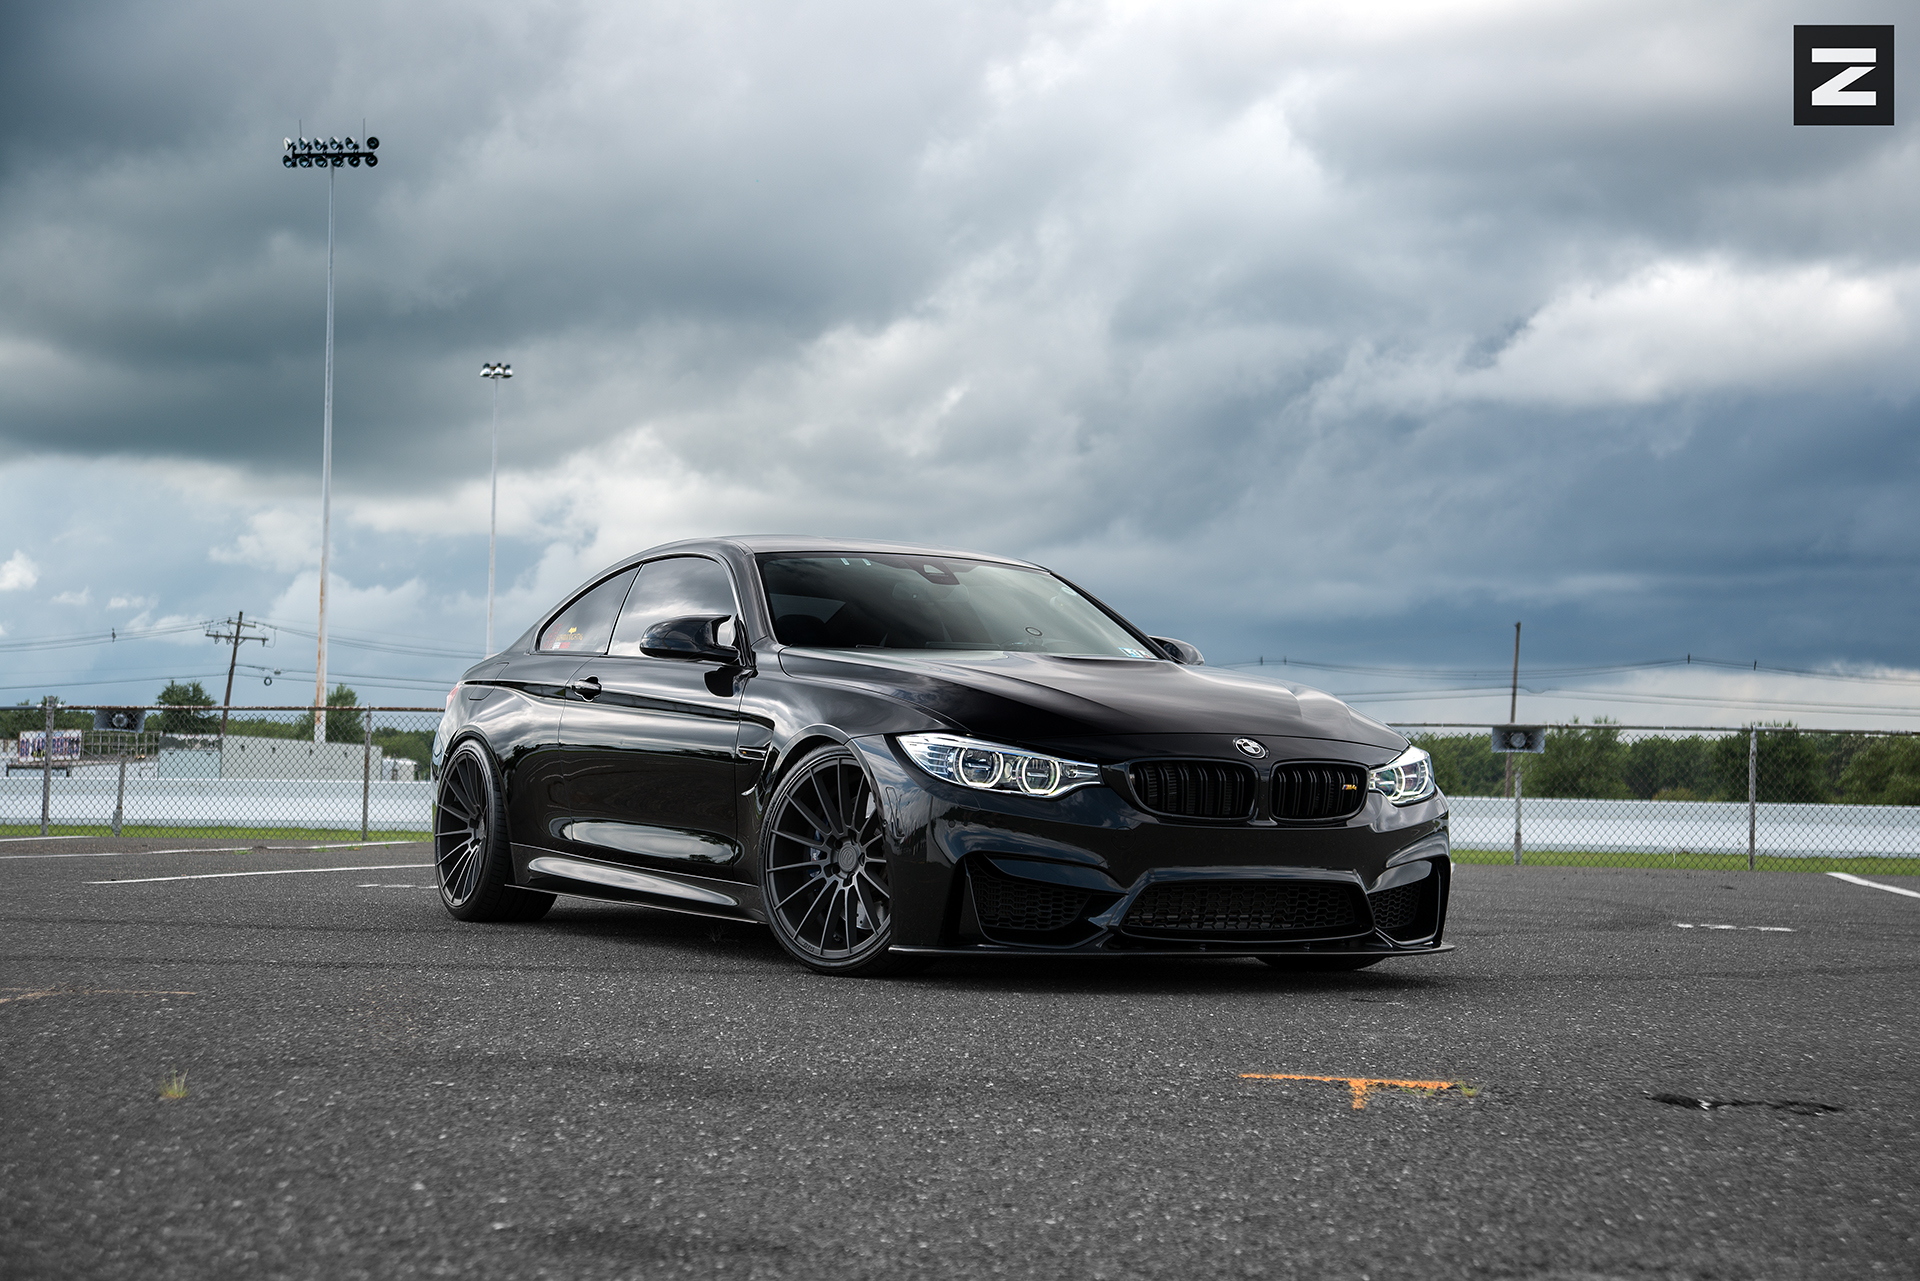 BMW F82 M4 Black Gunmetal ZS15